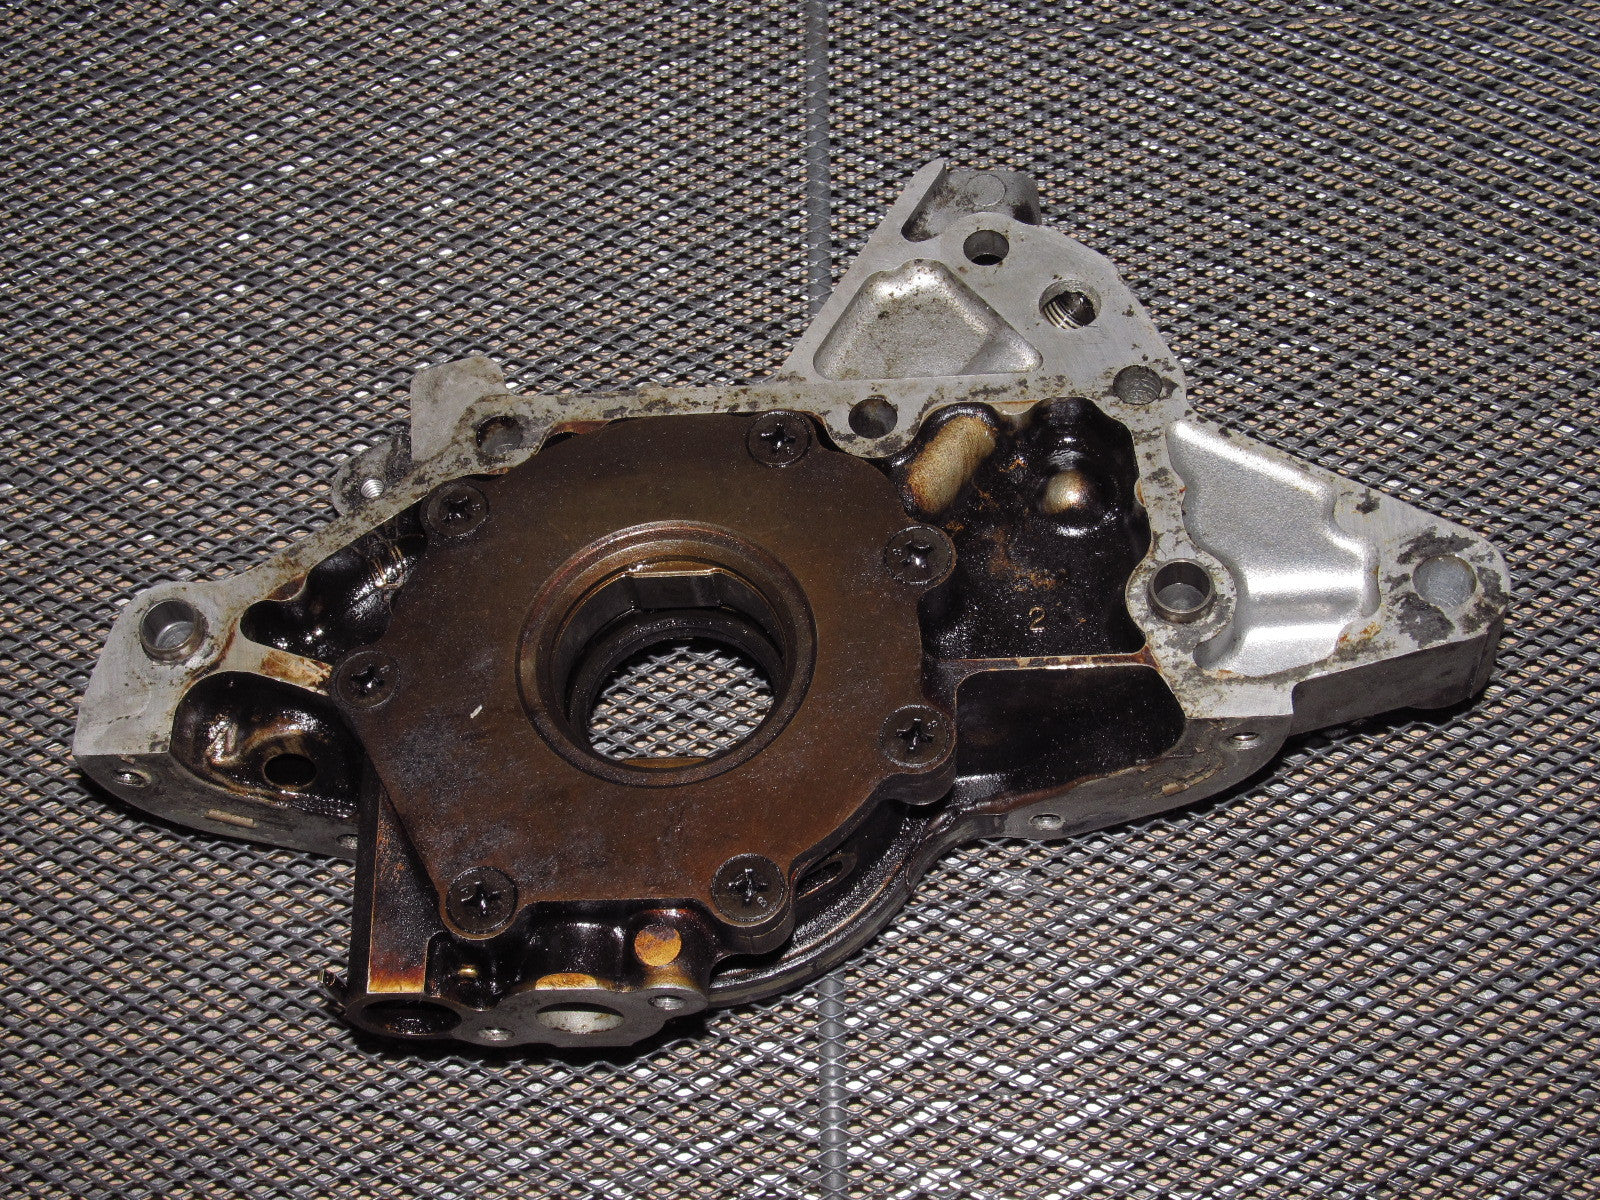 90 91 92 93 mazda miata oem engine oil pump autopartone 90 91 92 93 mazda miata oem engine oil pump publicscrutiny Gallery